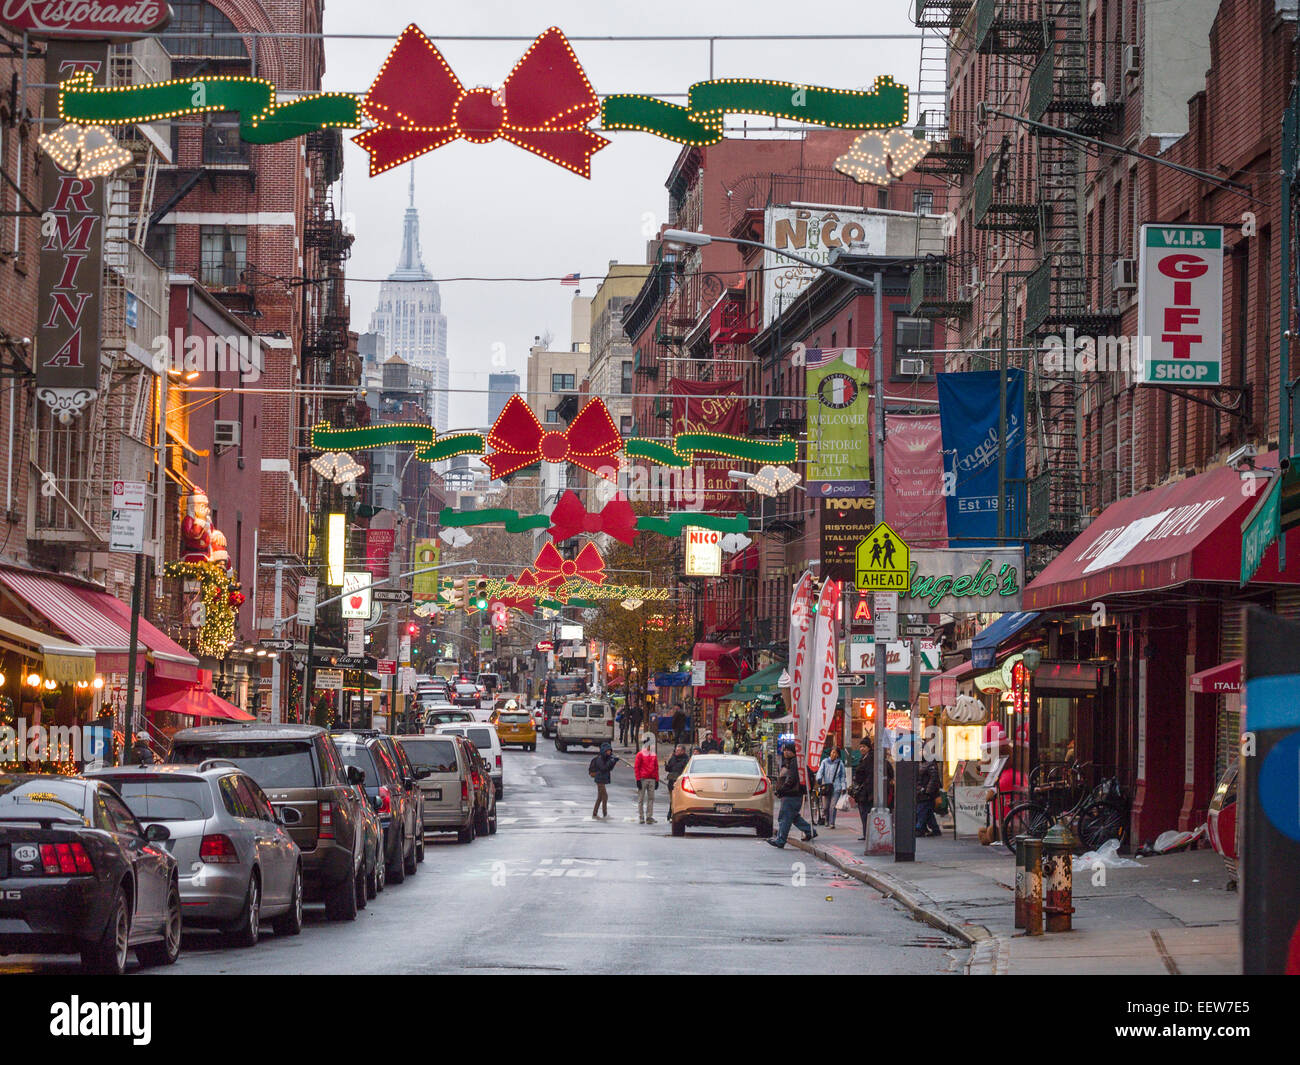 Little Christmas Italy.Little Italy All Dressed For Christmas Red Bows Lights A